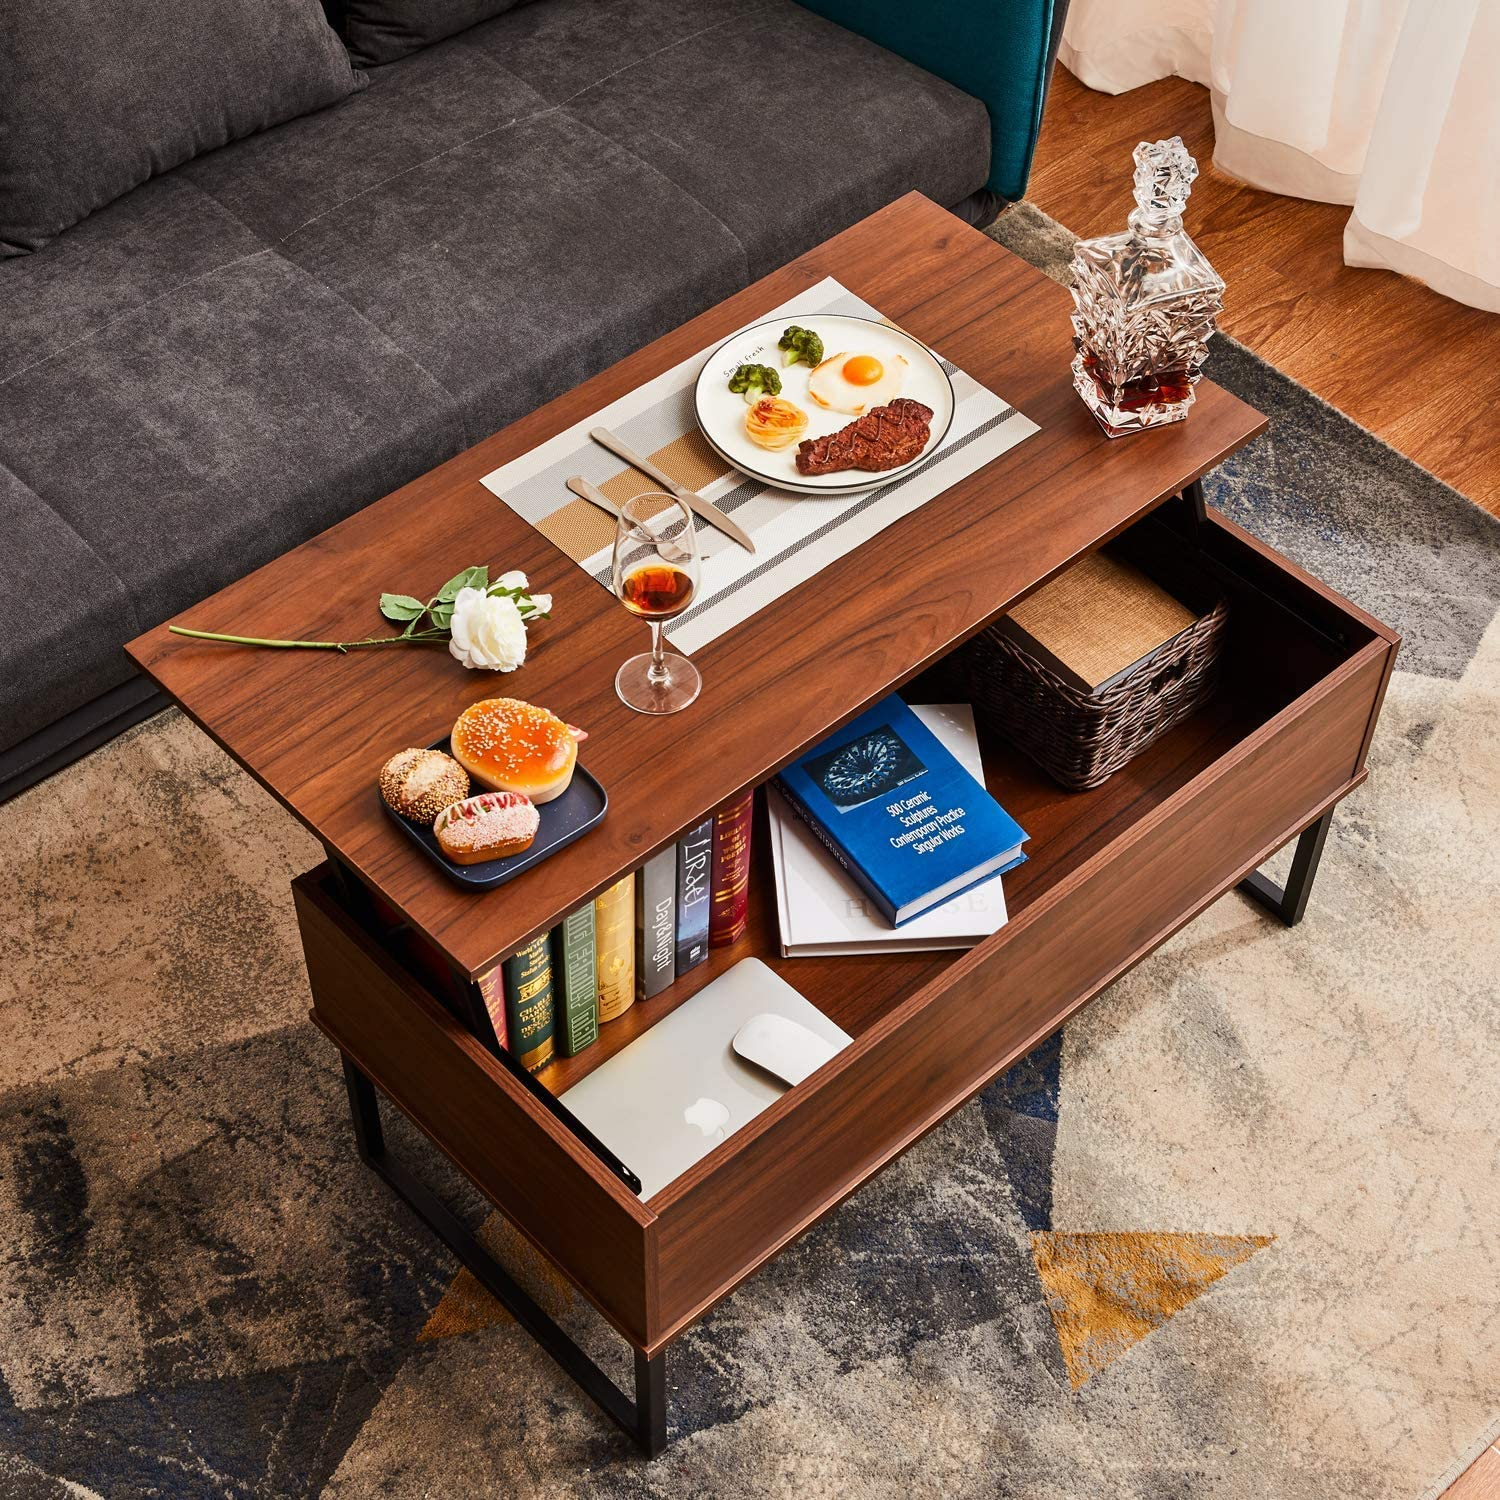 7 Best Lift Top Coffee Tables That Convert To Desks Kitchn